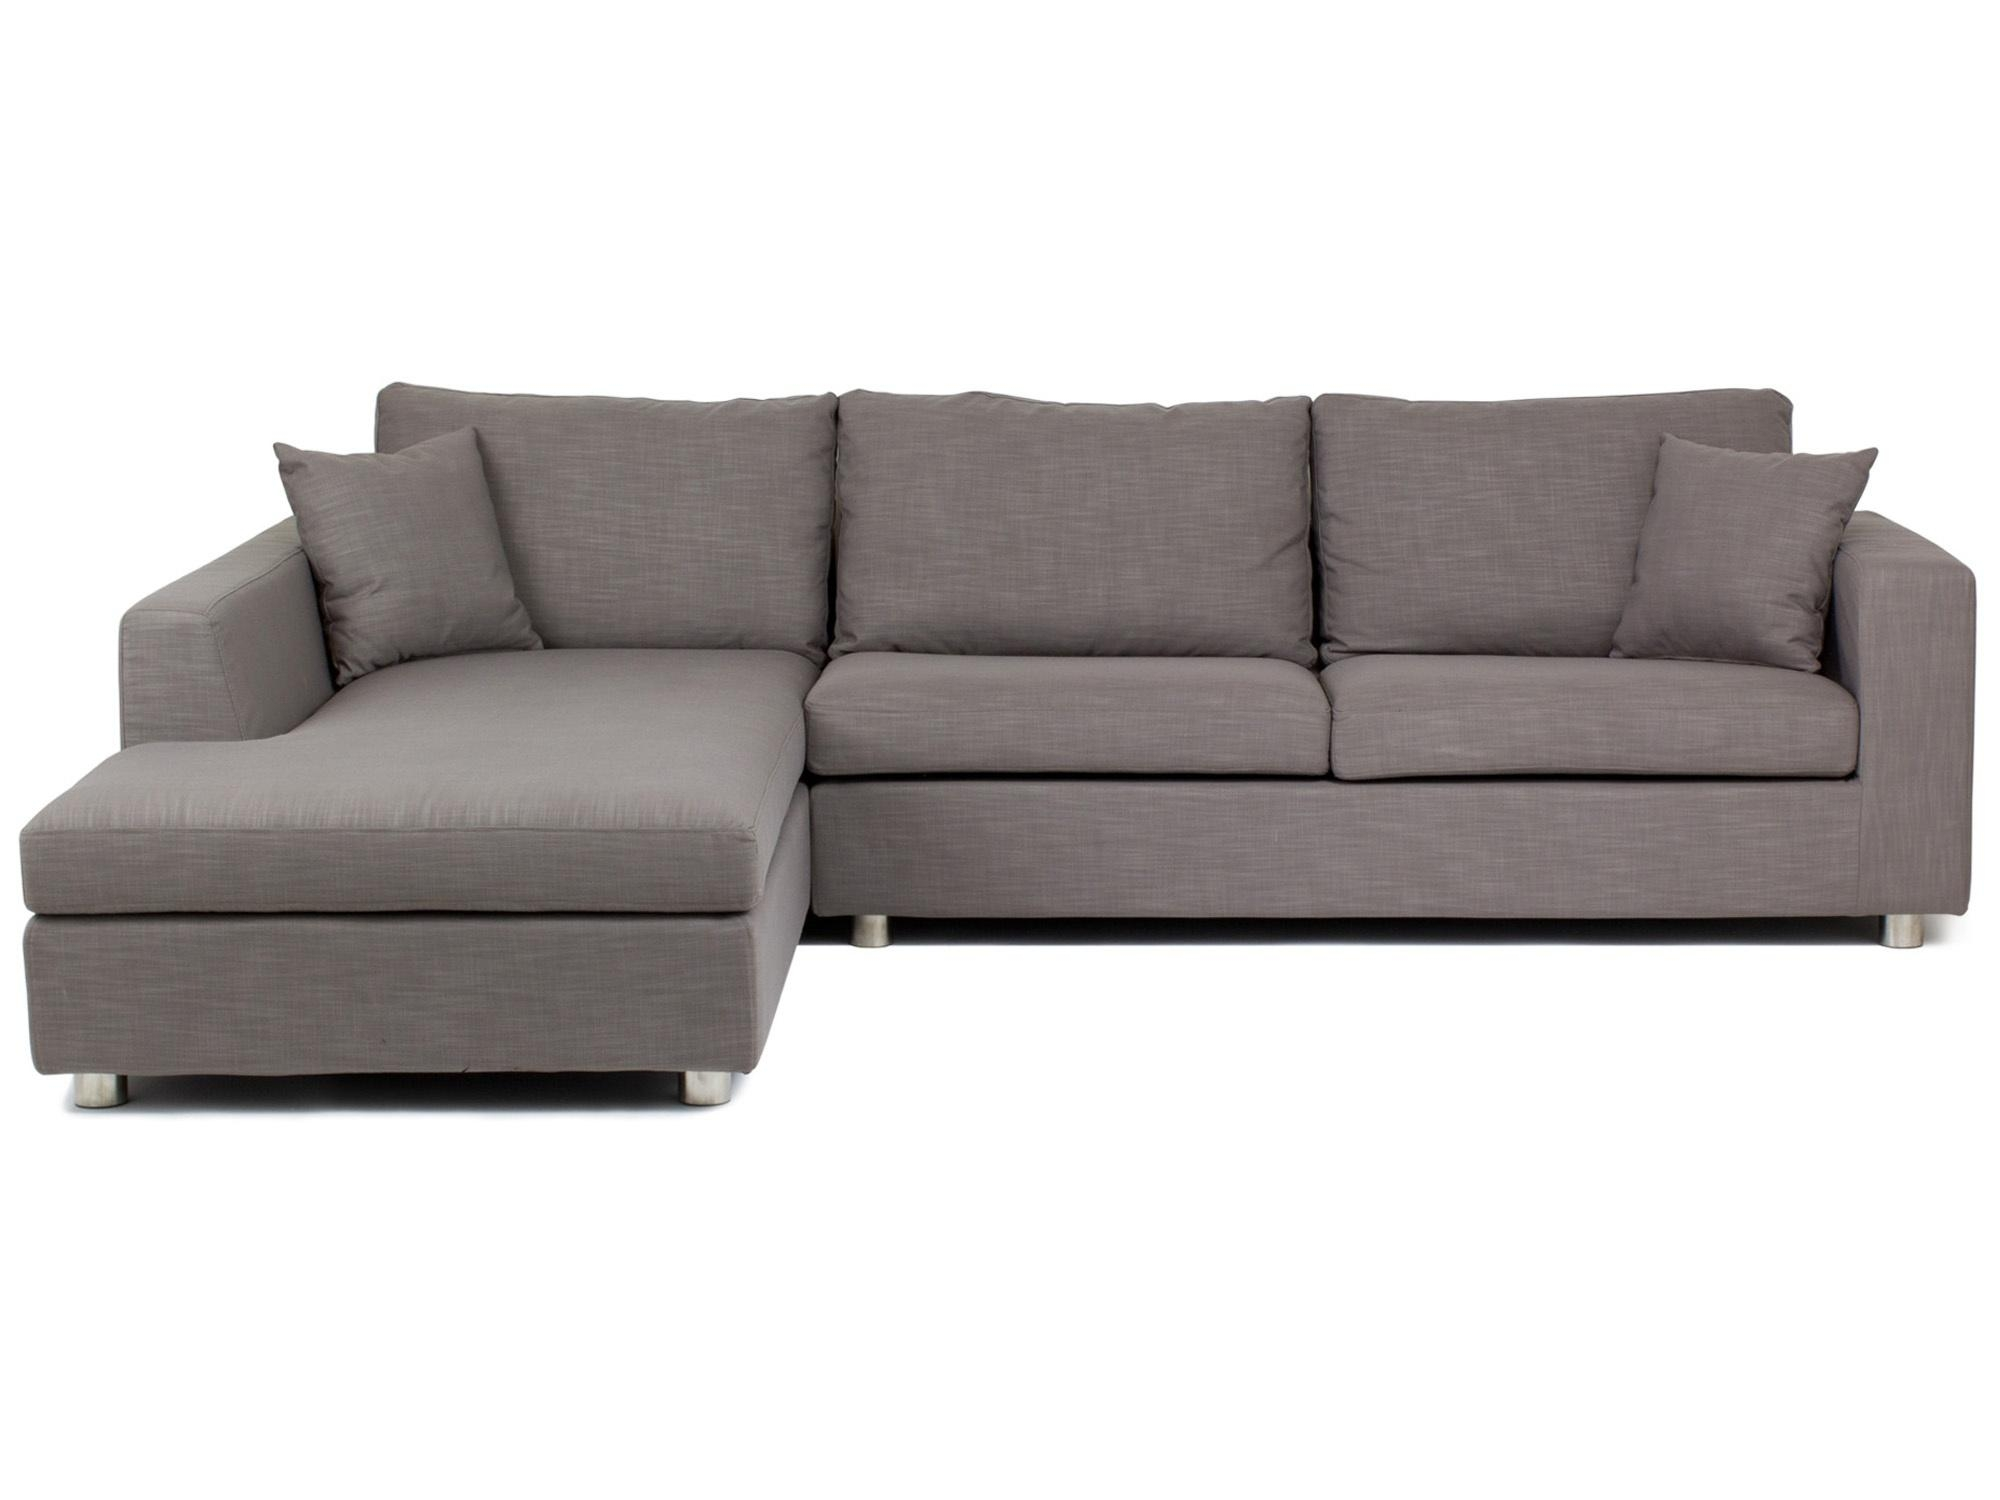 Sofas: Classic Meets Contemporary Chaise Sofa Bed For Ideal Living Regarding Sofa Beds With Storage Chaise (View 4 of 20)